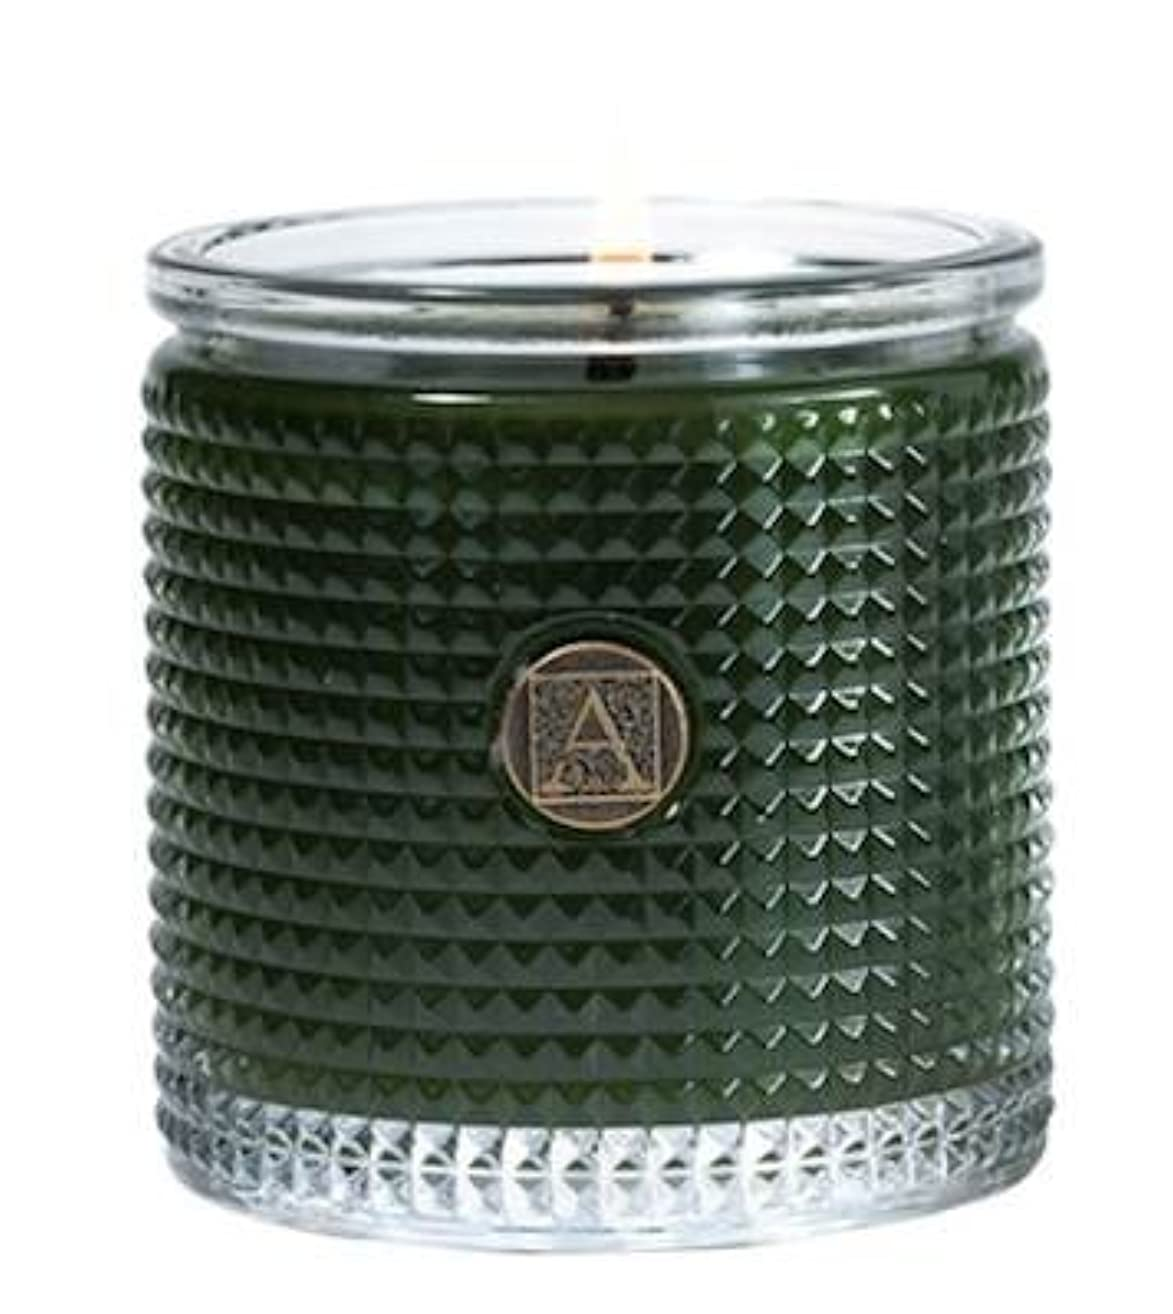 イデオロギー平和ビルSmell of theツリーTextured Glass Candle、5.5 Oz by Aromatique